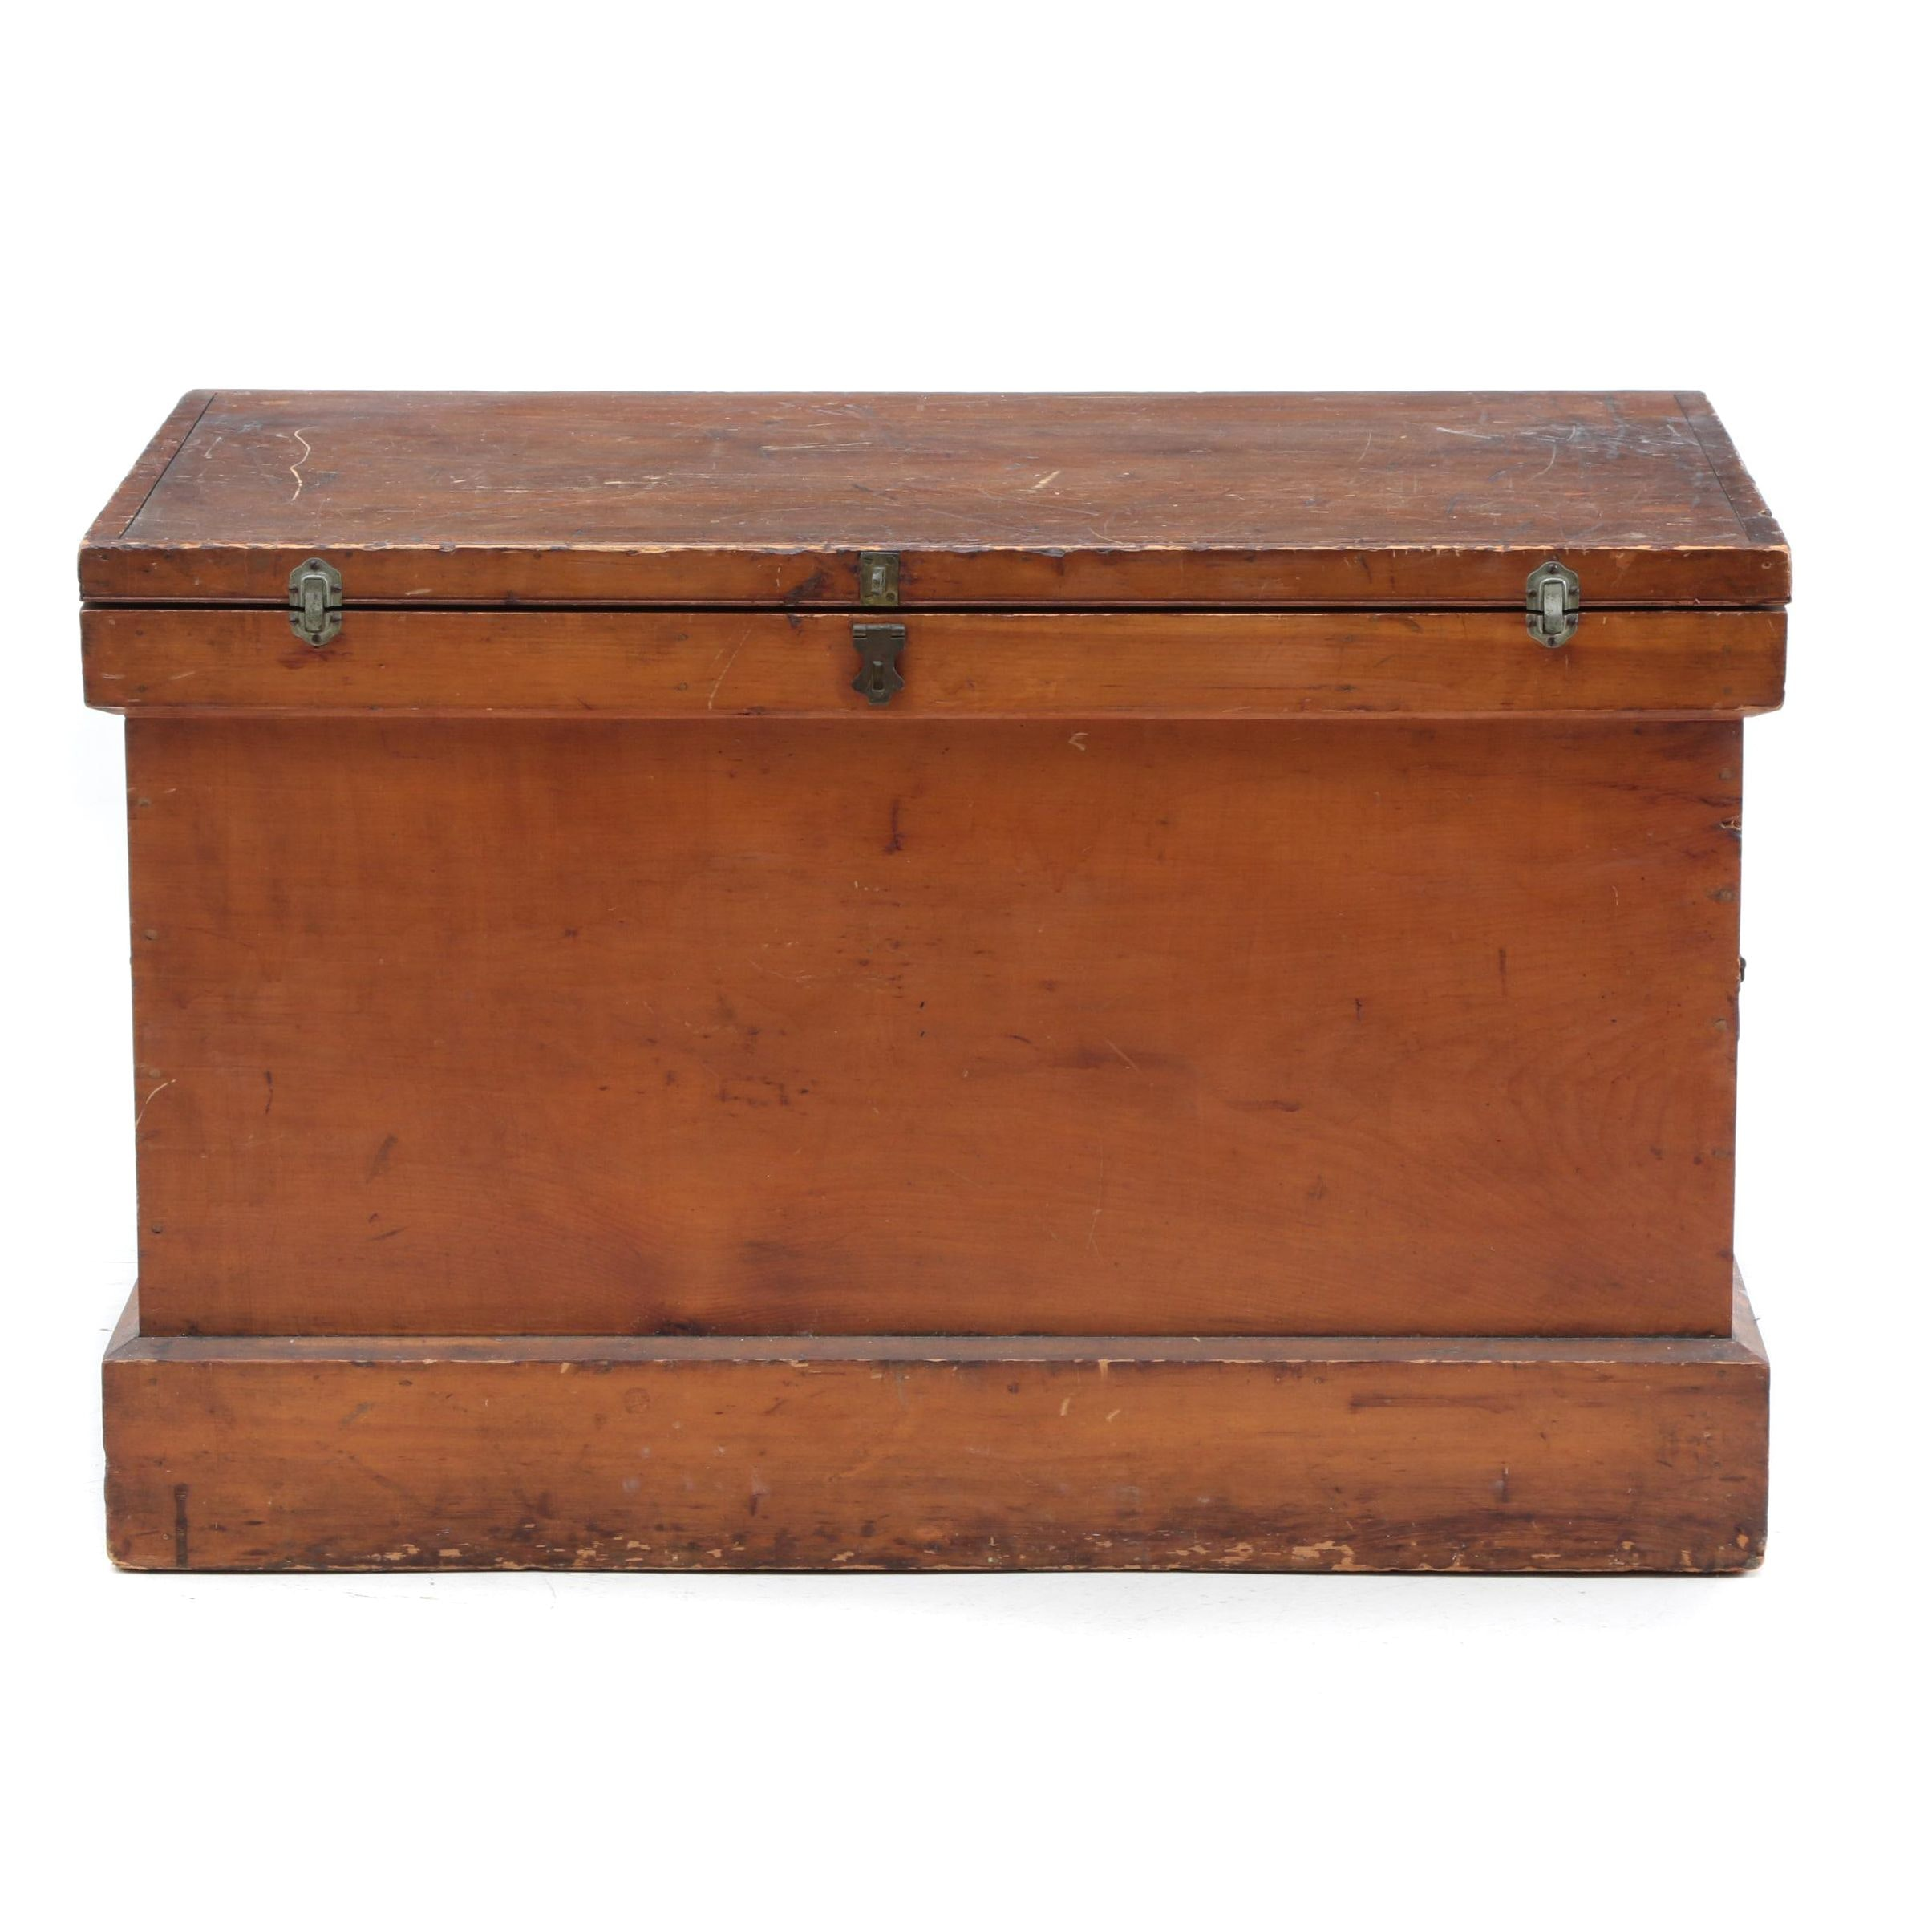 Vintage Cedar Chest with Decorative Metal Handles